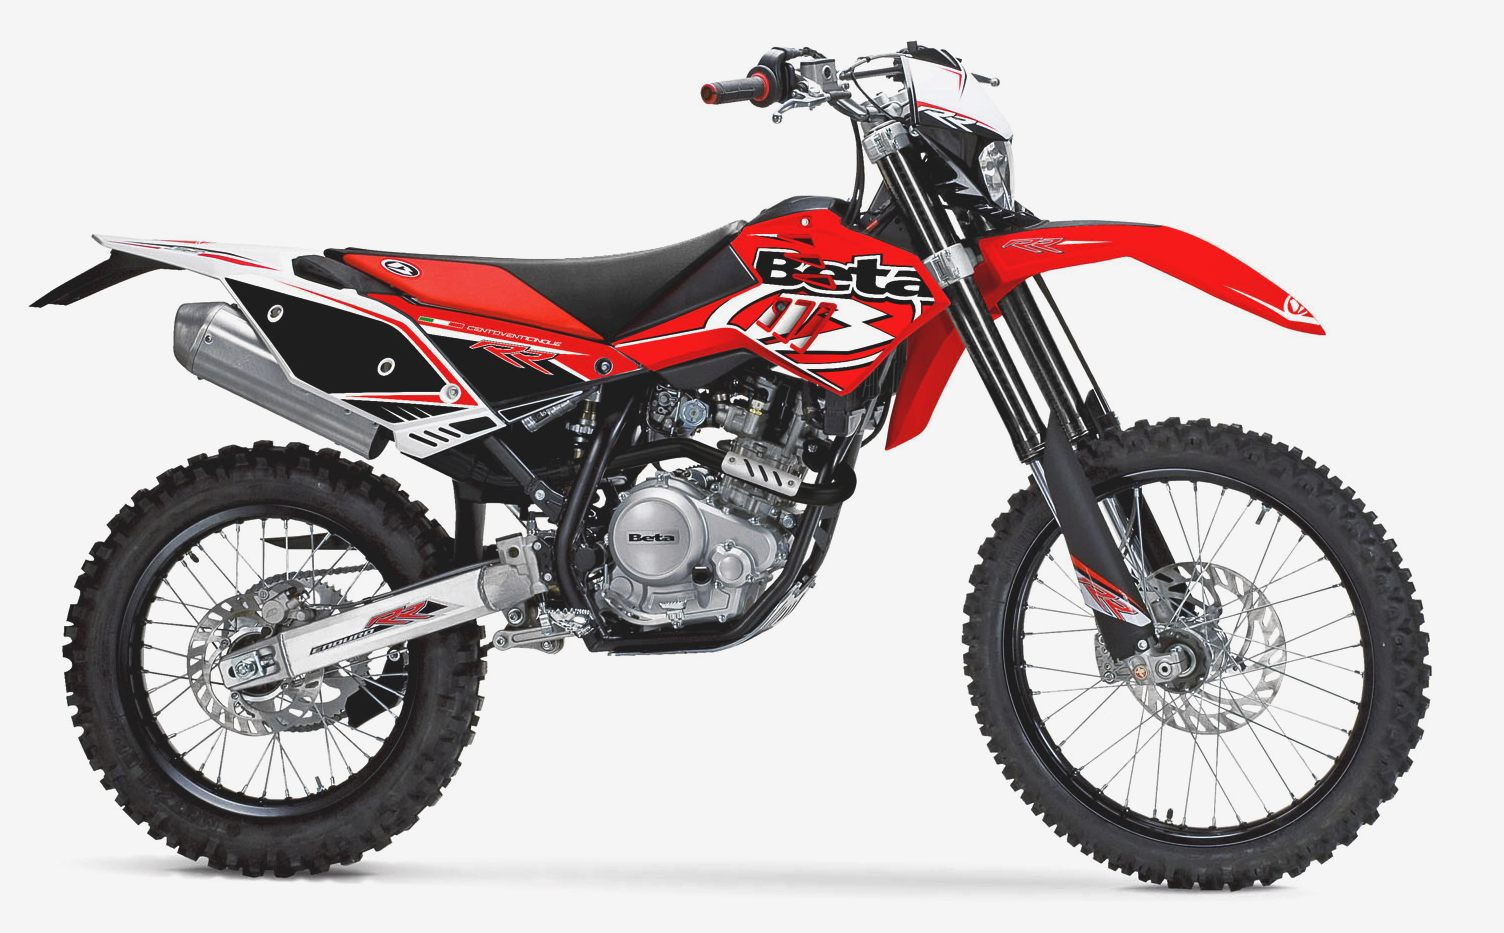 Puch GS 125 F 5 #2